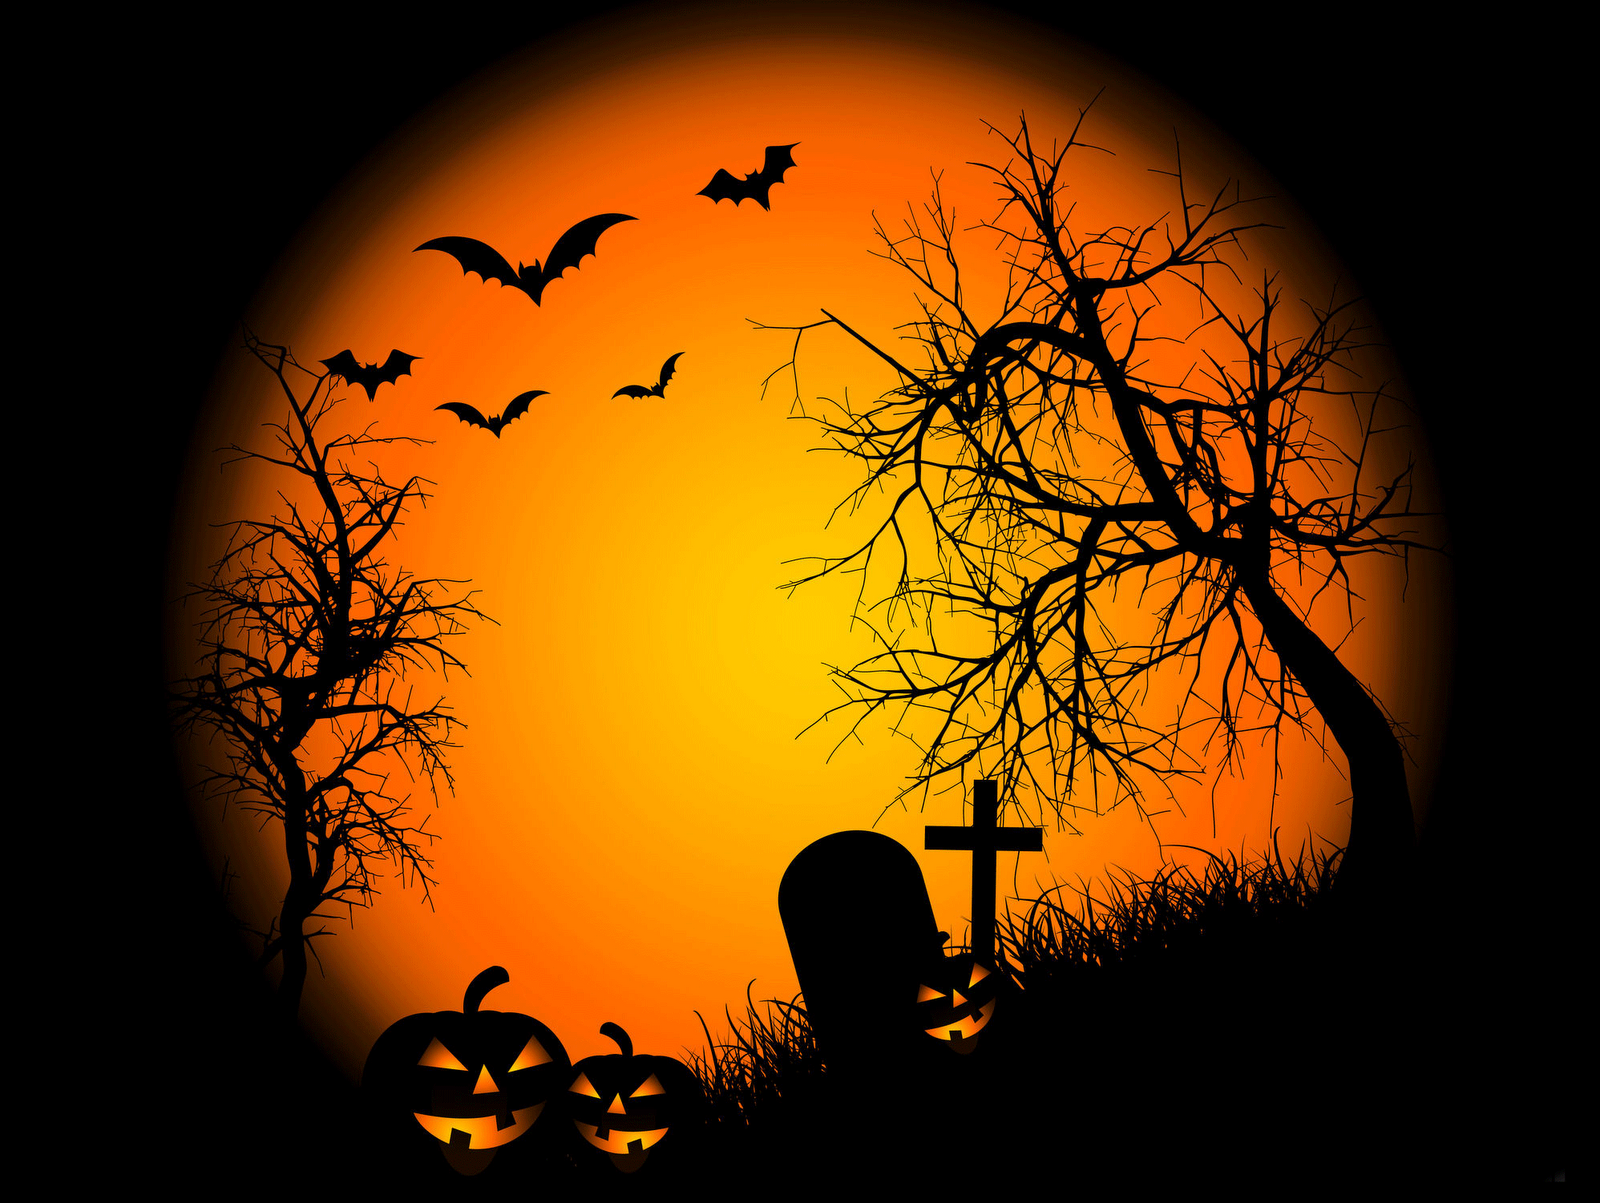 Graveyard Halloween Wallpaper